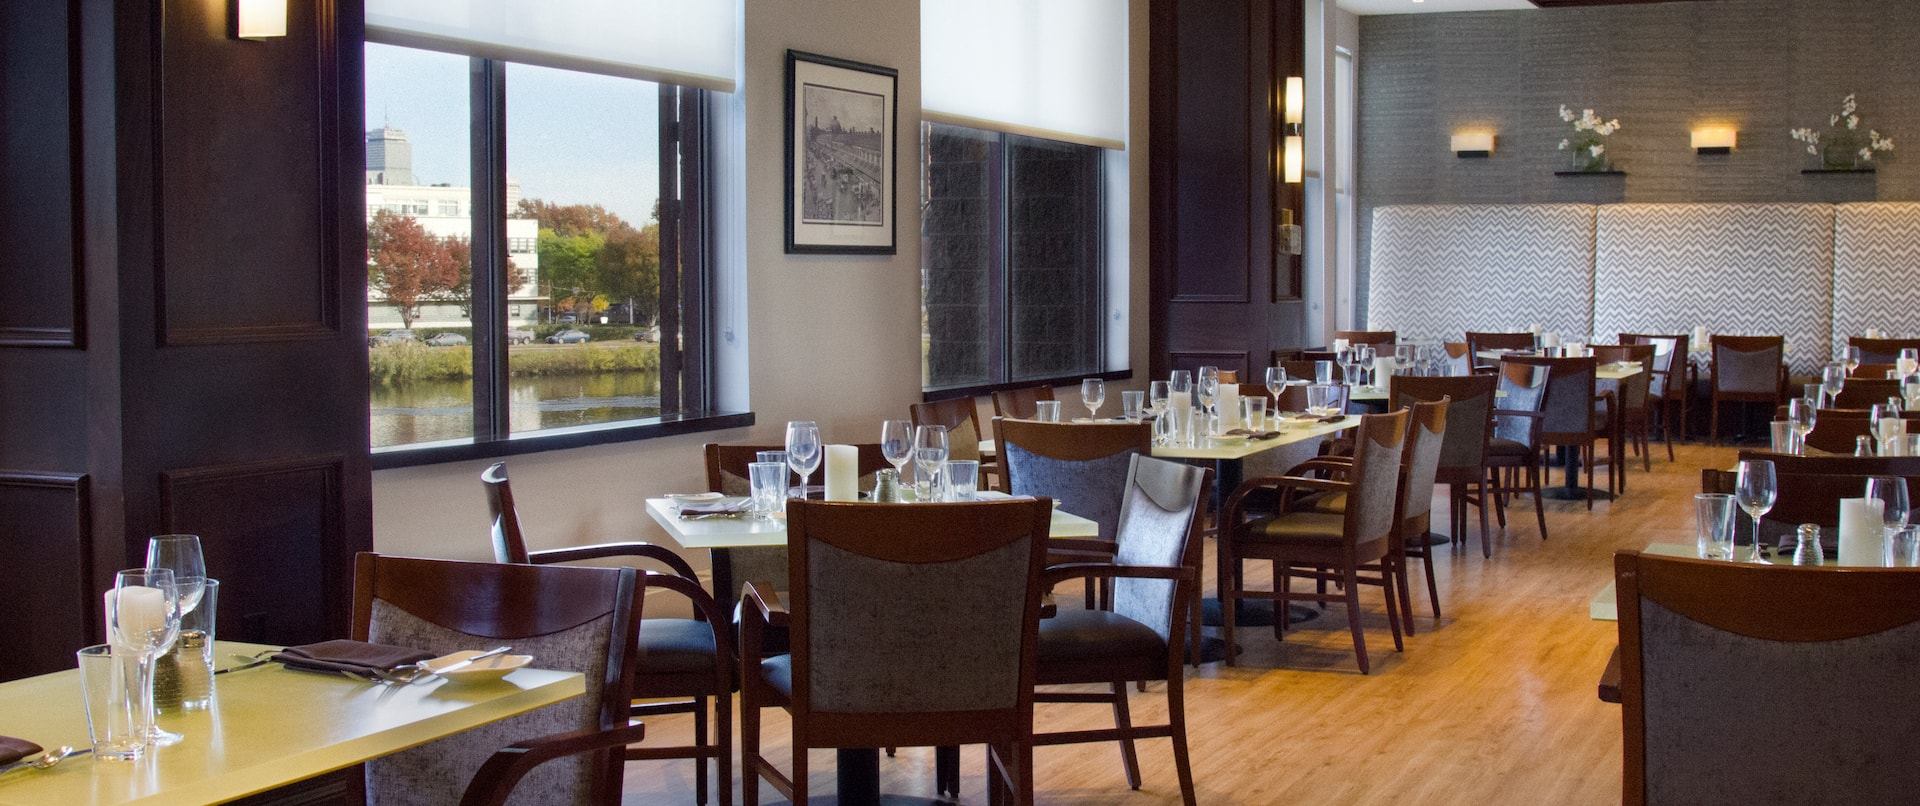 Table and Booth Seating Near Windows With Outside Views in Dining Area of Boathouse 400 Restaurant